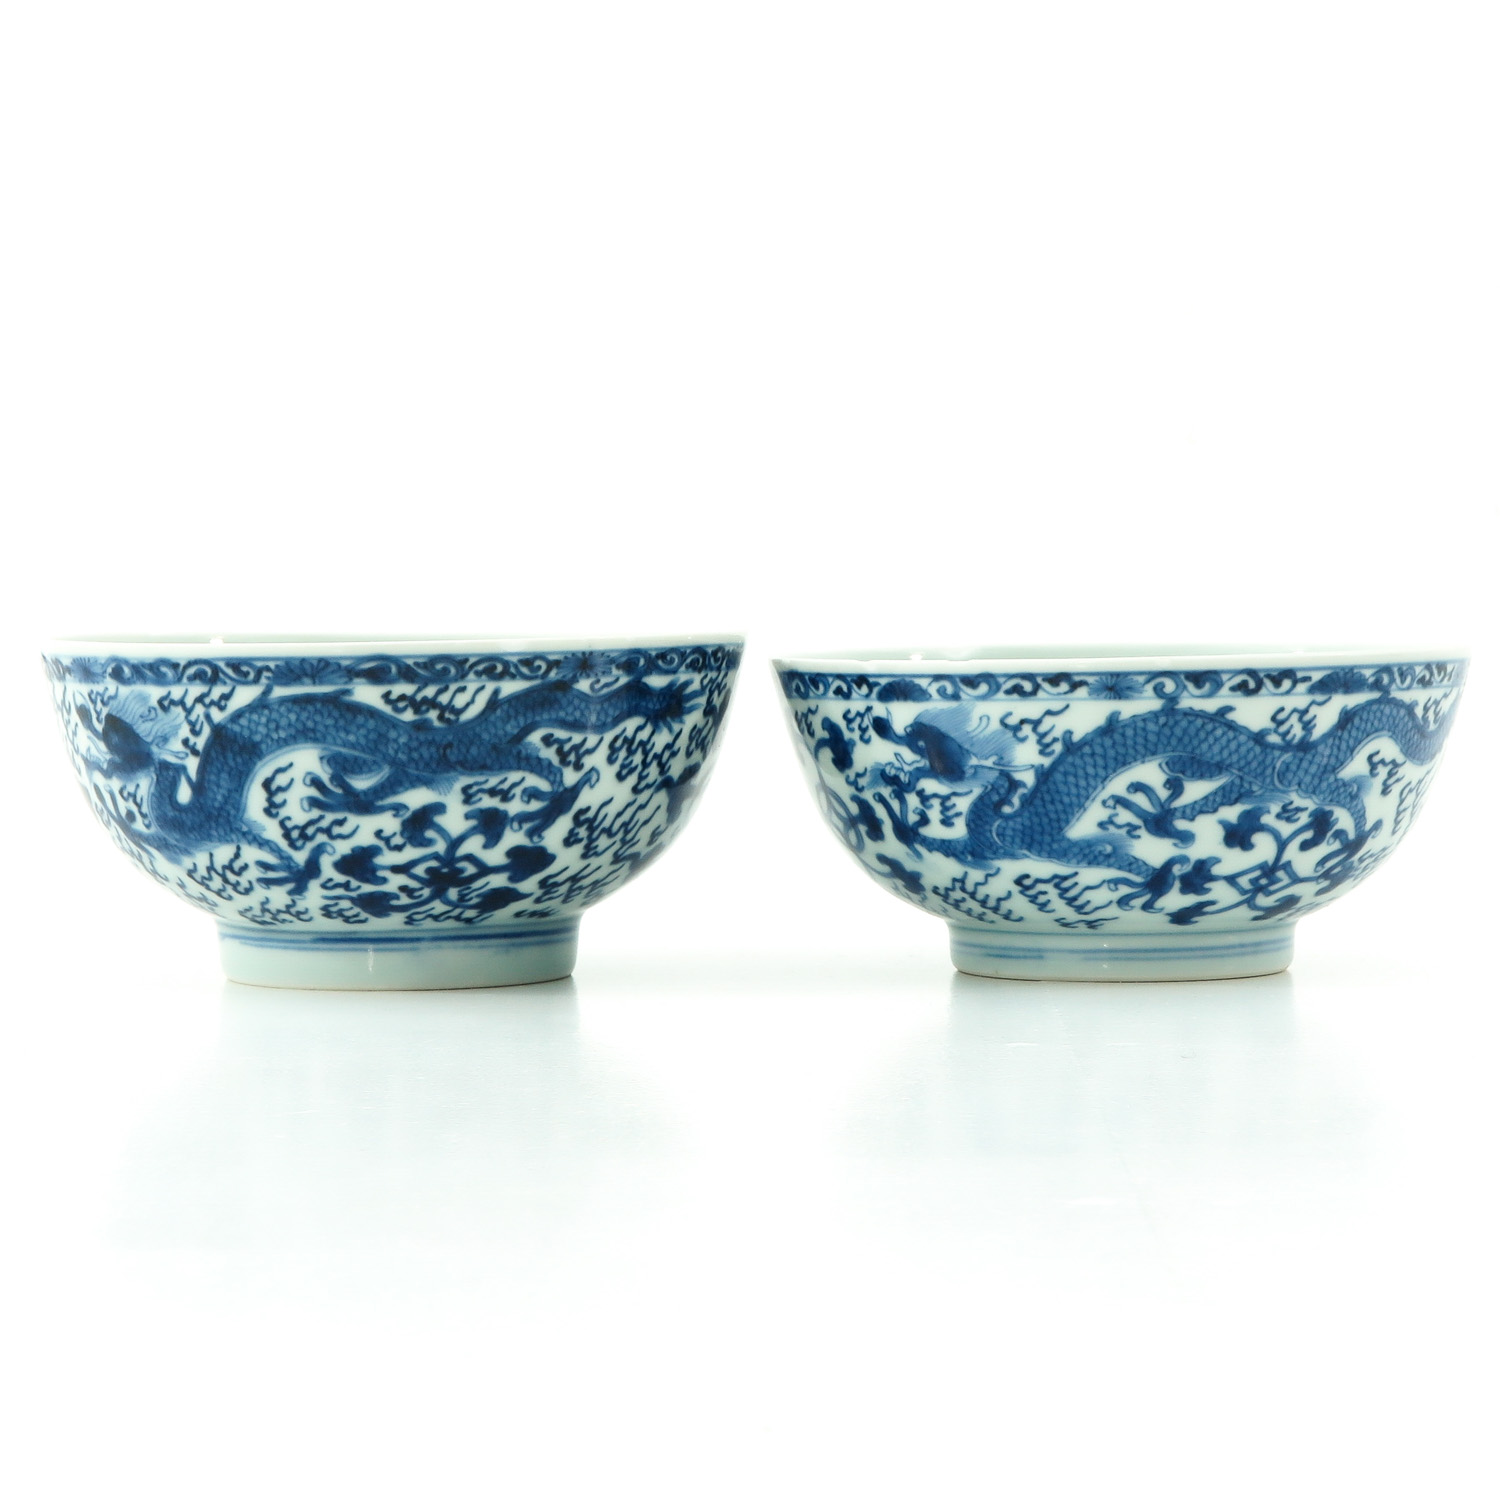 A Pair of Blue and White Bowls - Image 4 of 9